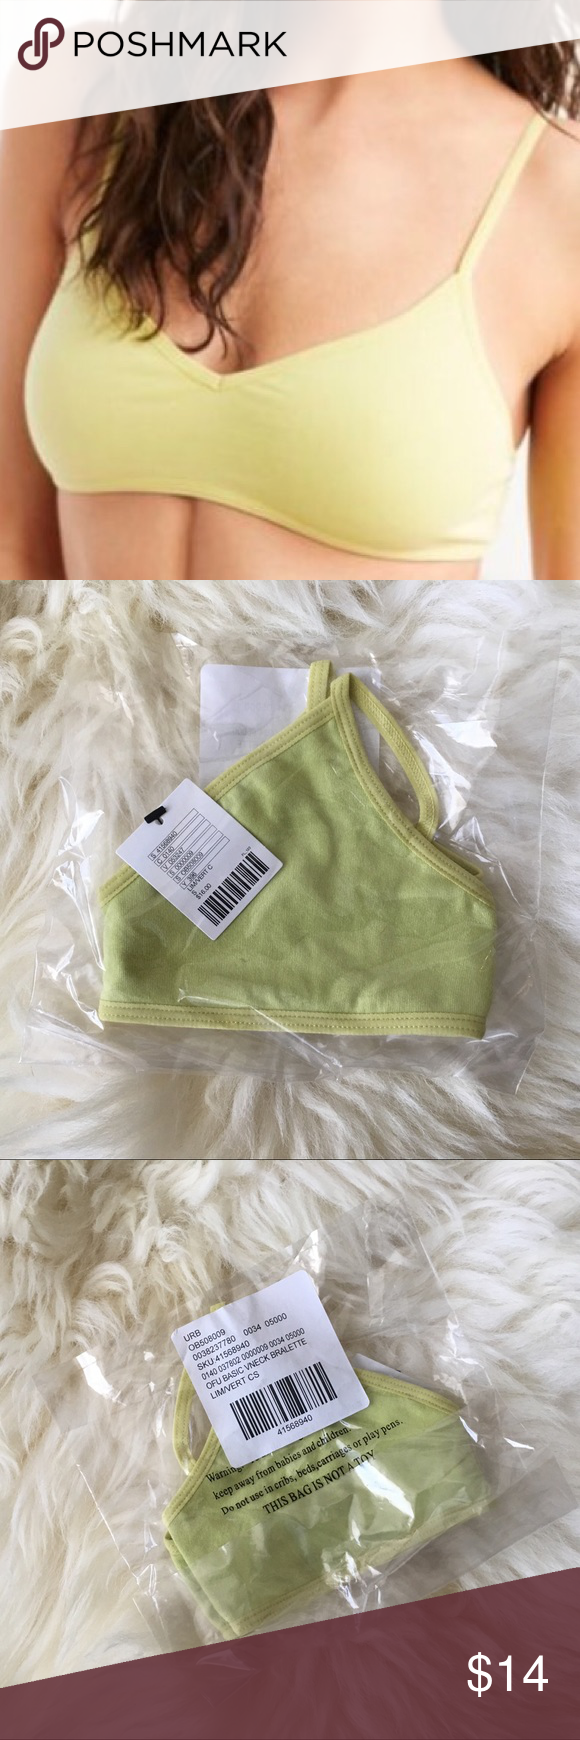 f1a28aed2902b Lime Brallete Boutique